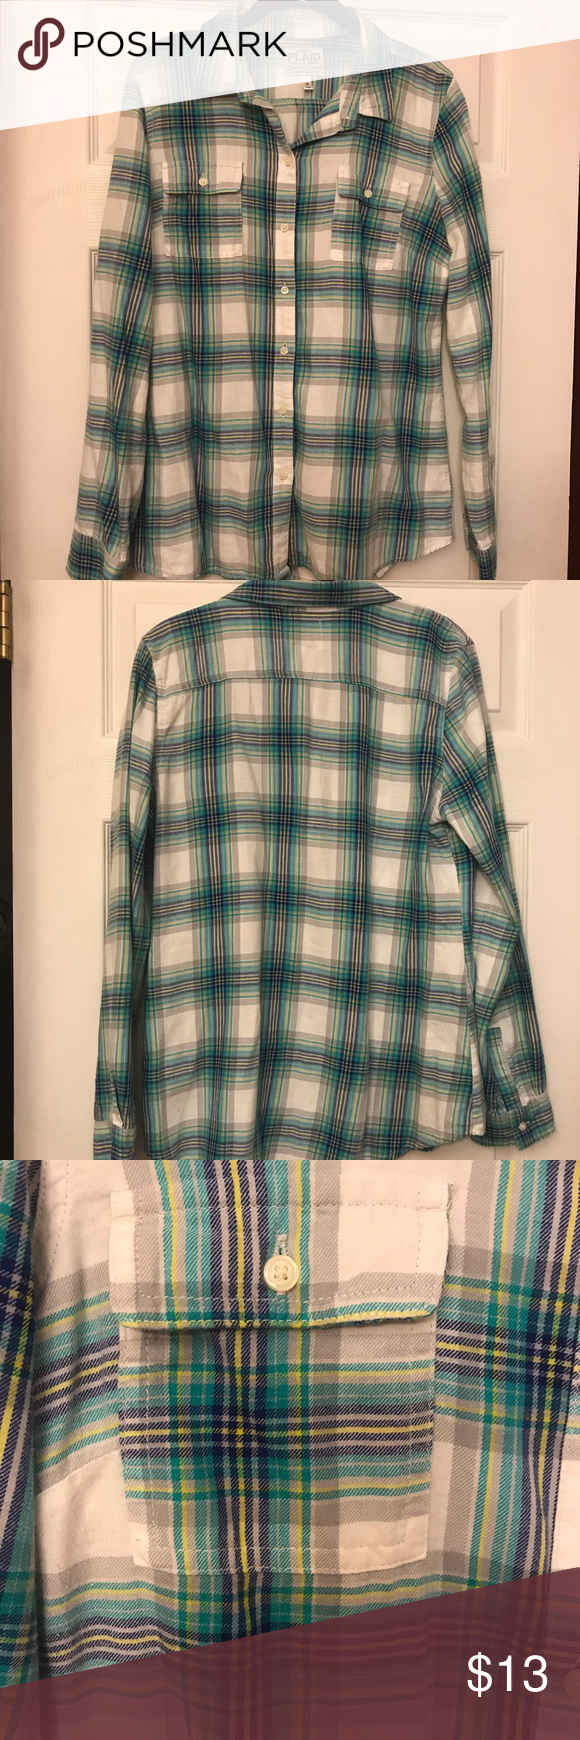 Flannel shirt knot  EUC flannel from Old Navy  Flannels Navy tops and Navy